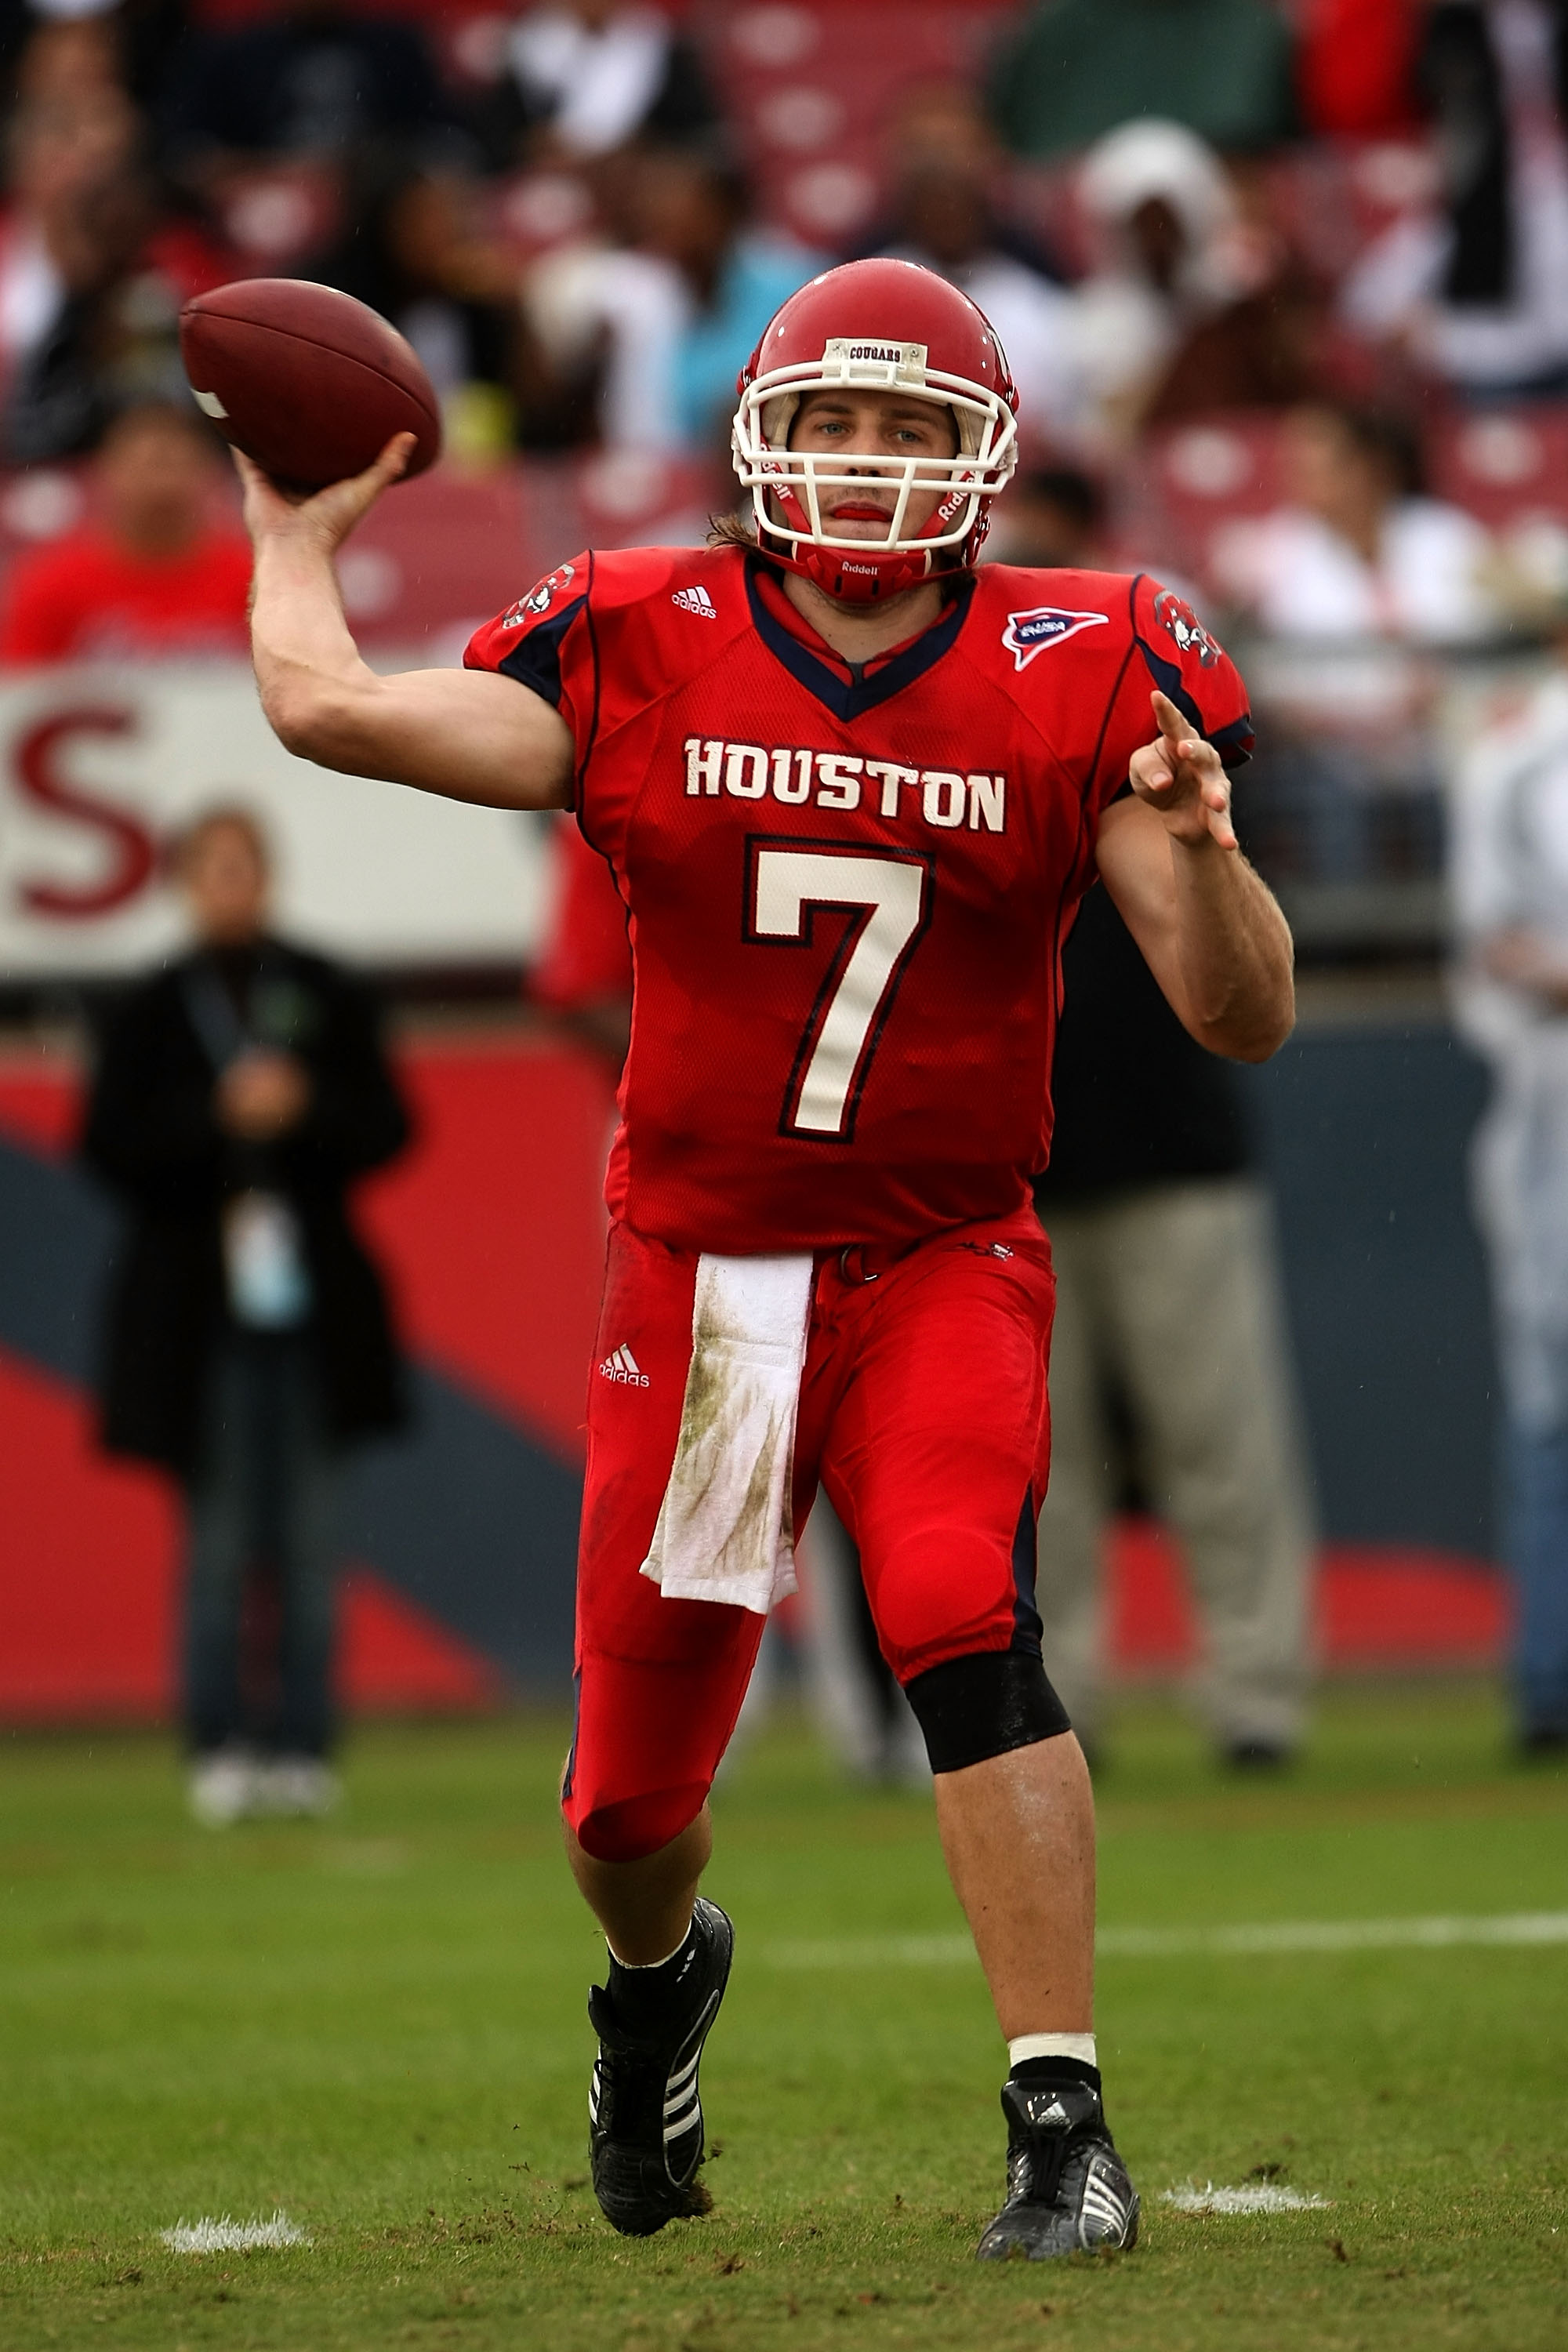 Houston QB, Case Keenum